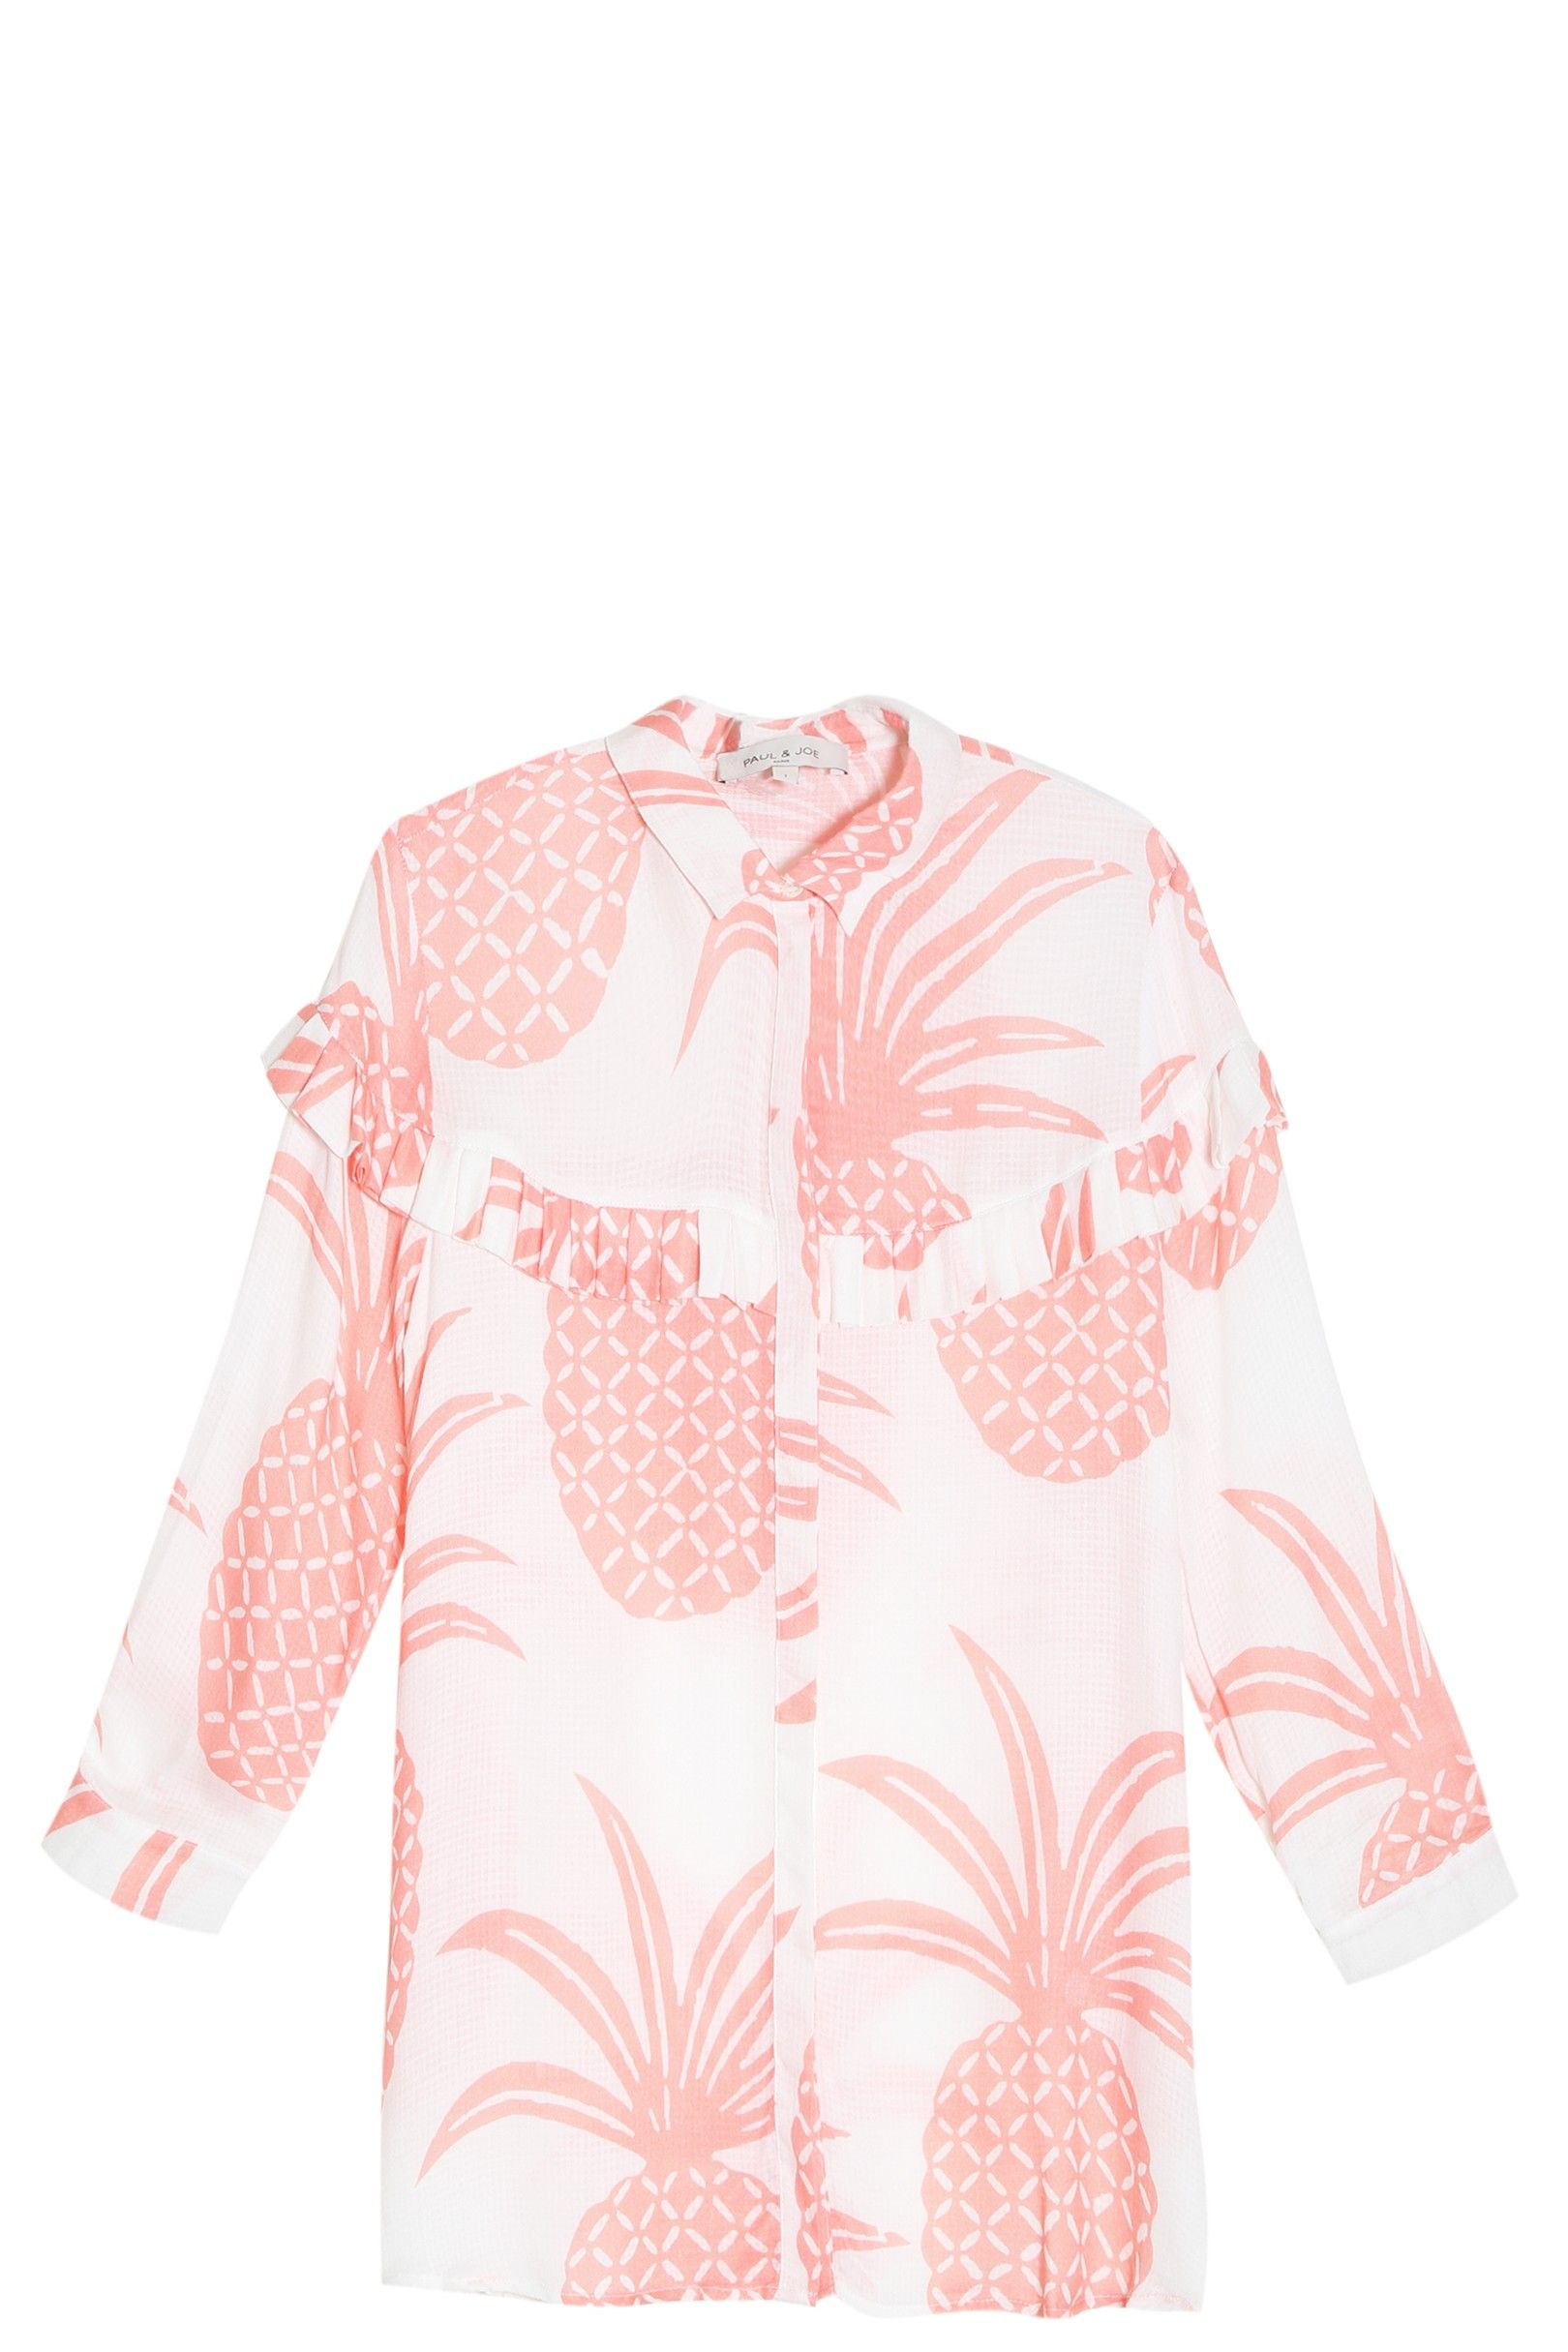 SS16 | Paul & Joe Pineapple Shirt. Available in-store and on Boutique1.com